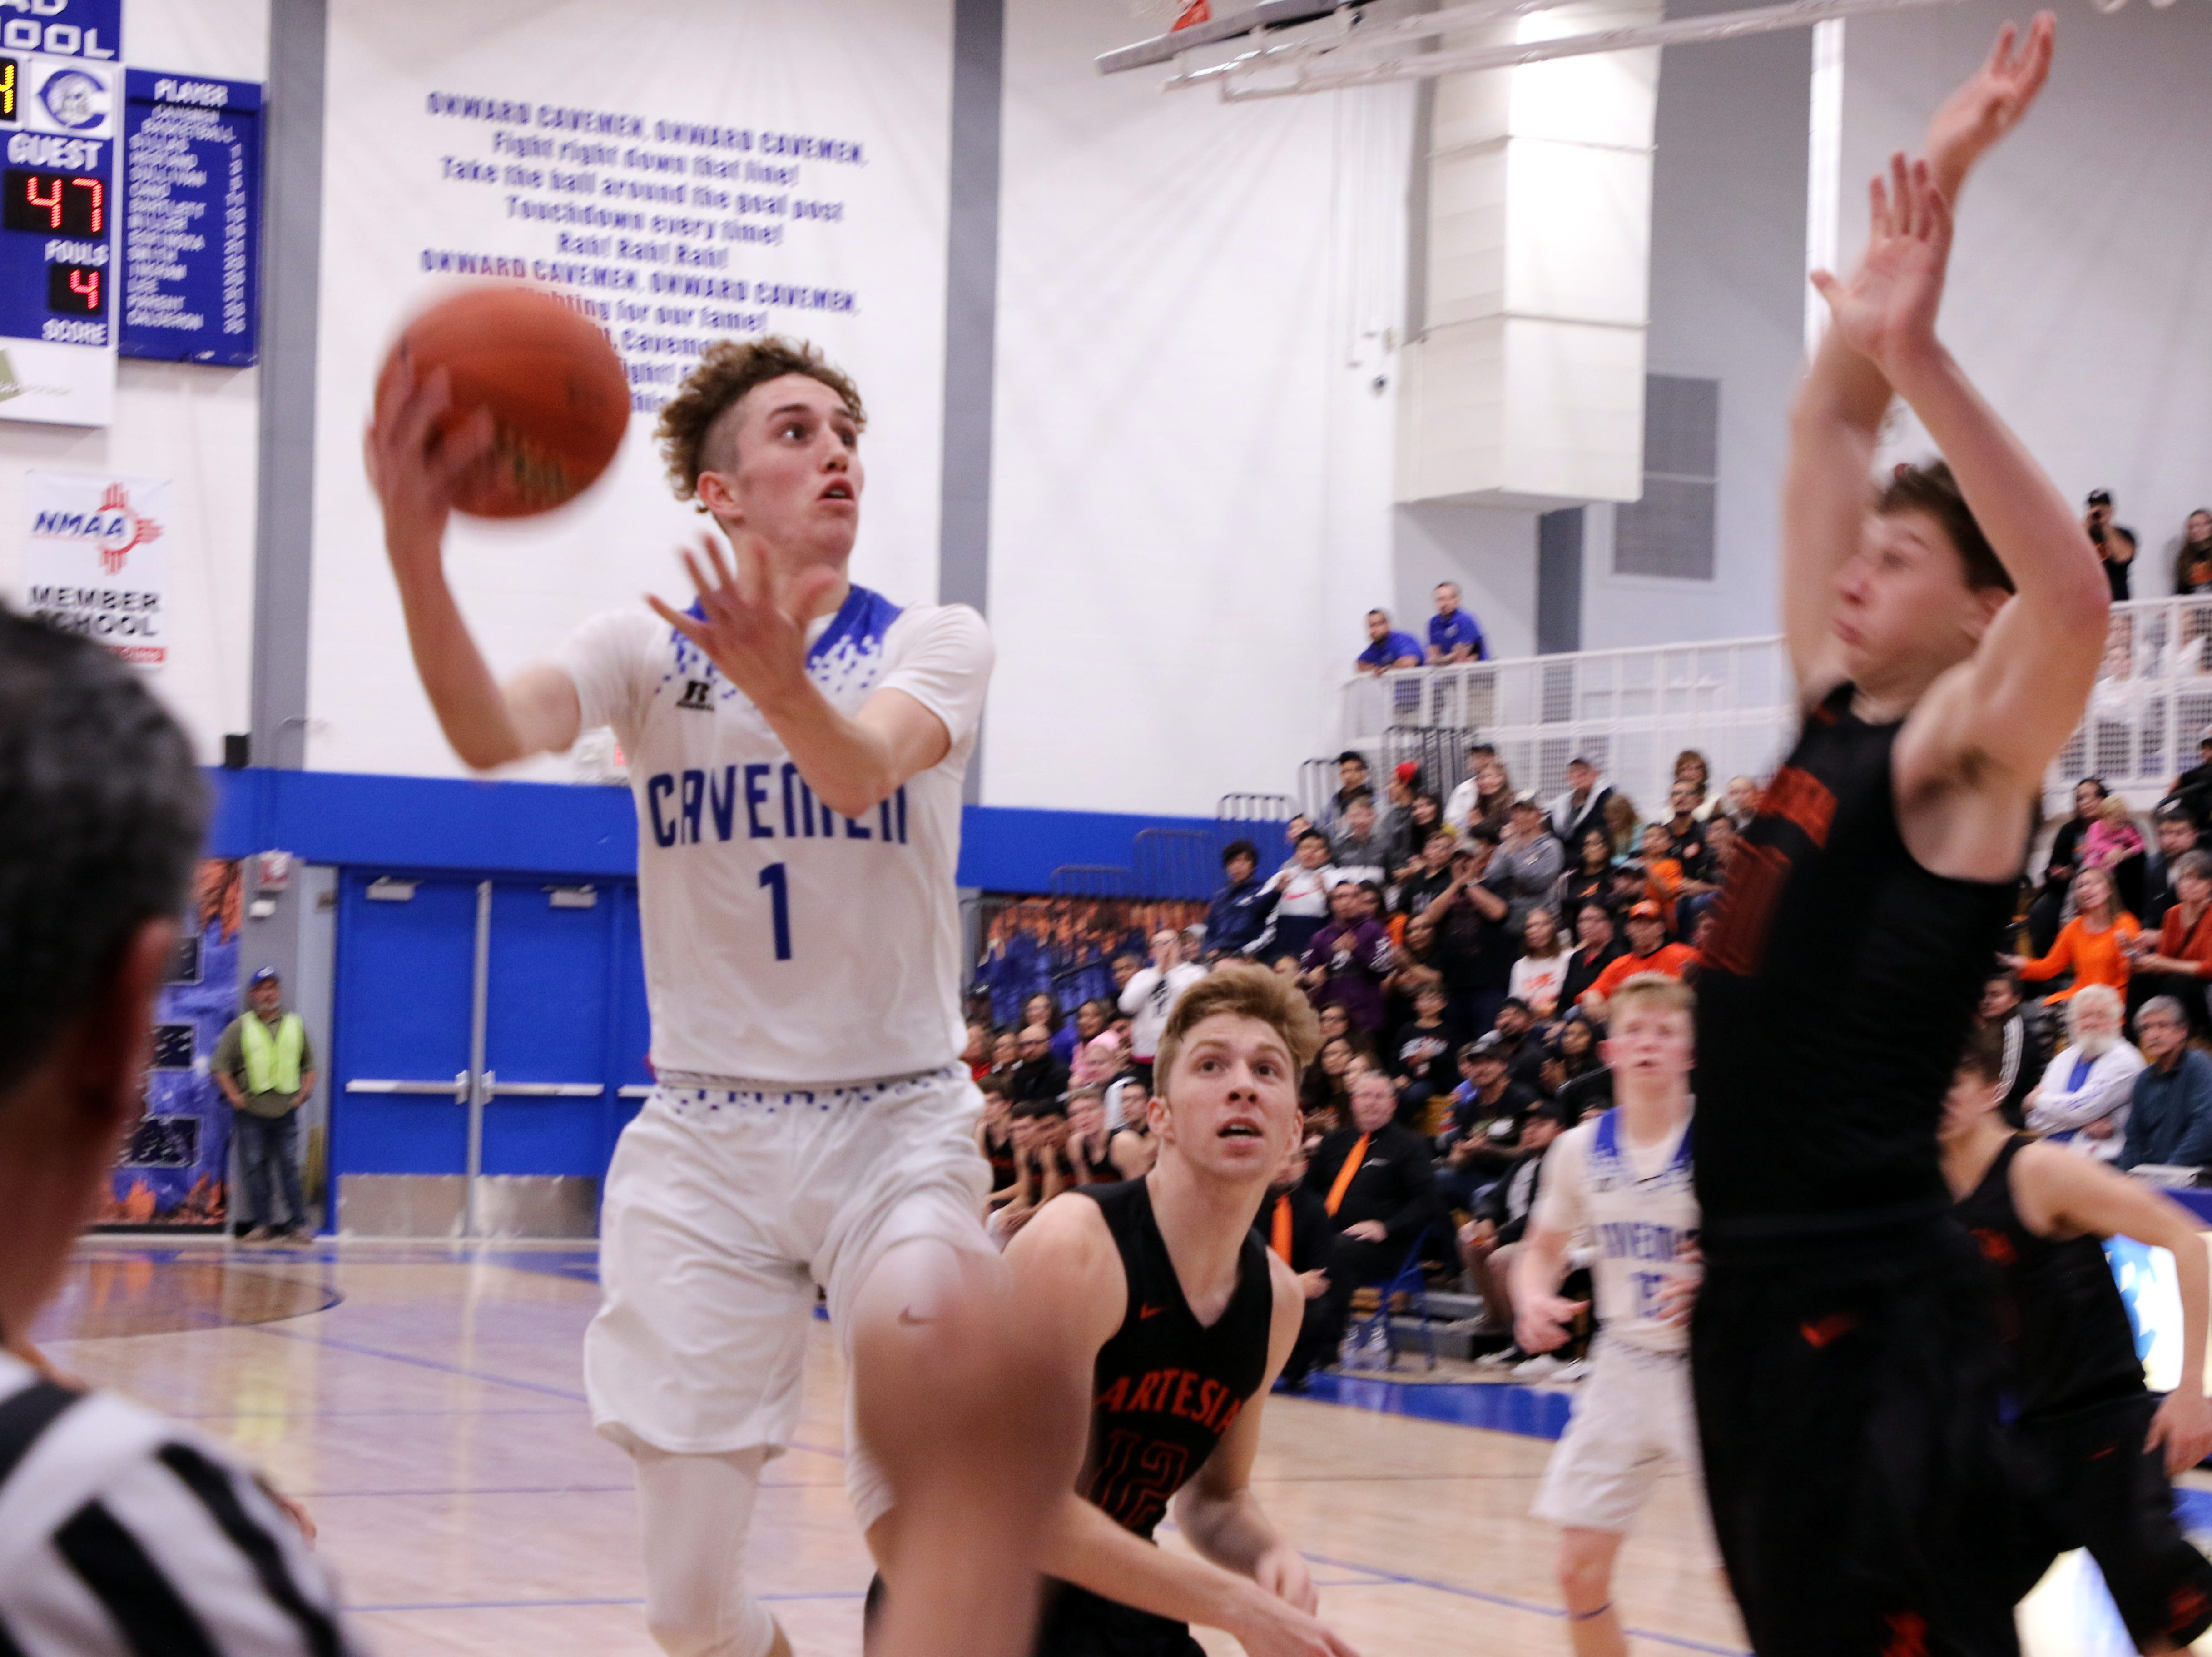 Carlsbad's Josh Sillas goes for a layup while Artesia's Clay Houghtaling goes for a block during Tuesday's game.